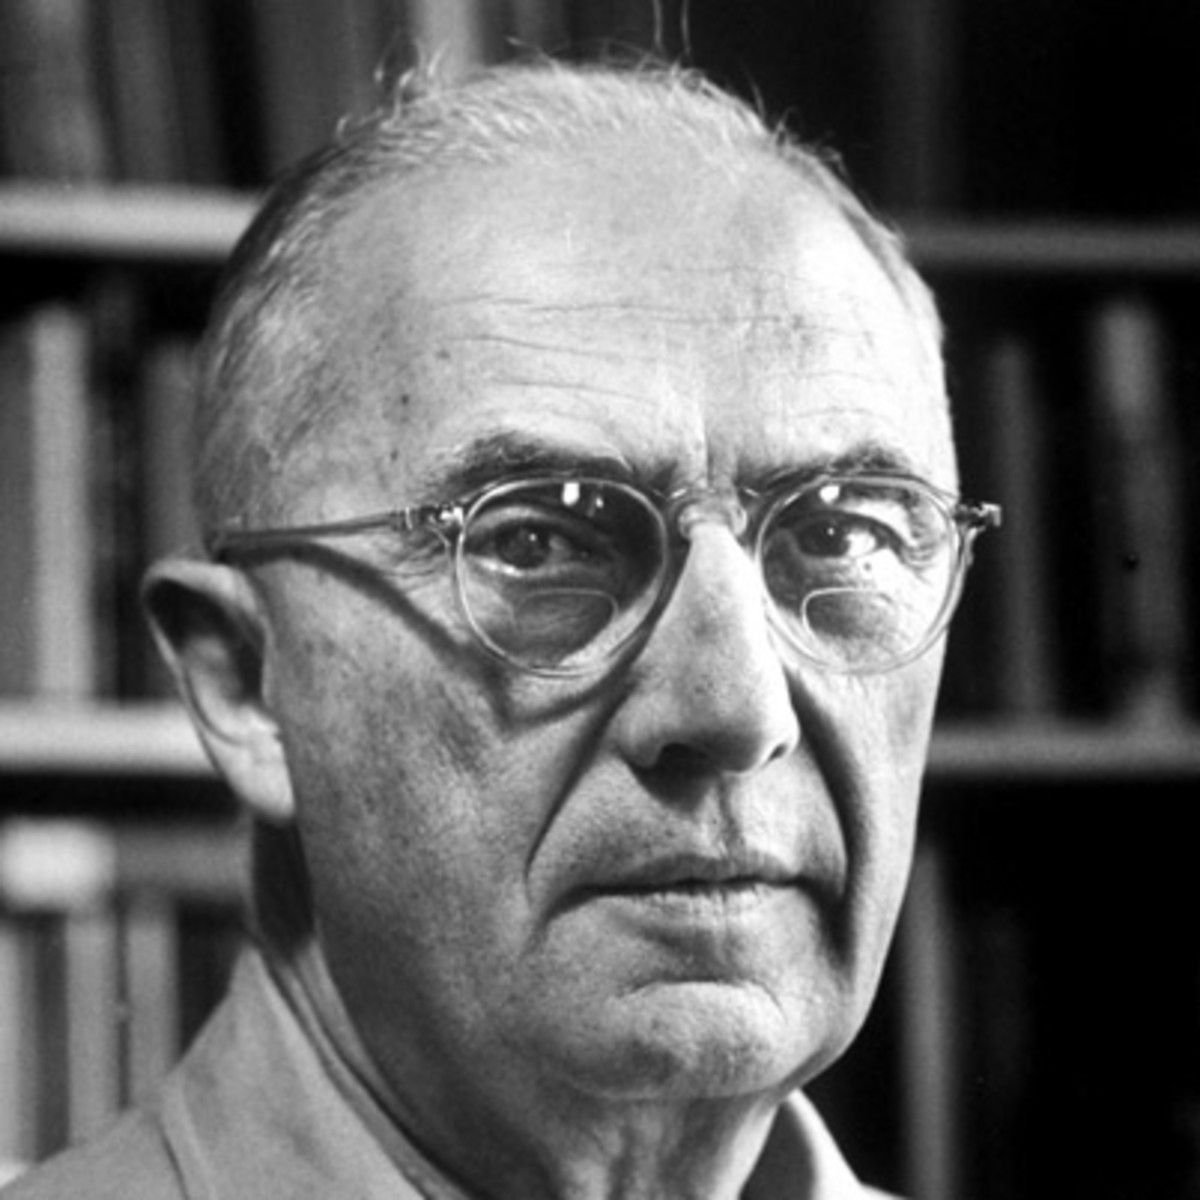 """william carlos williams the artistic poet Williams again expresses his admiration for brueghel's concern """"with it all"""", for the older artist's inclusive, comprehensive engagement with the world this from the poet who wrote of wheelbarrows and cold plums."""